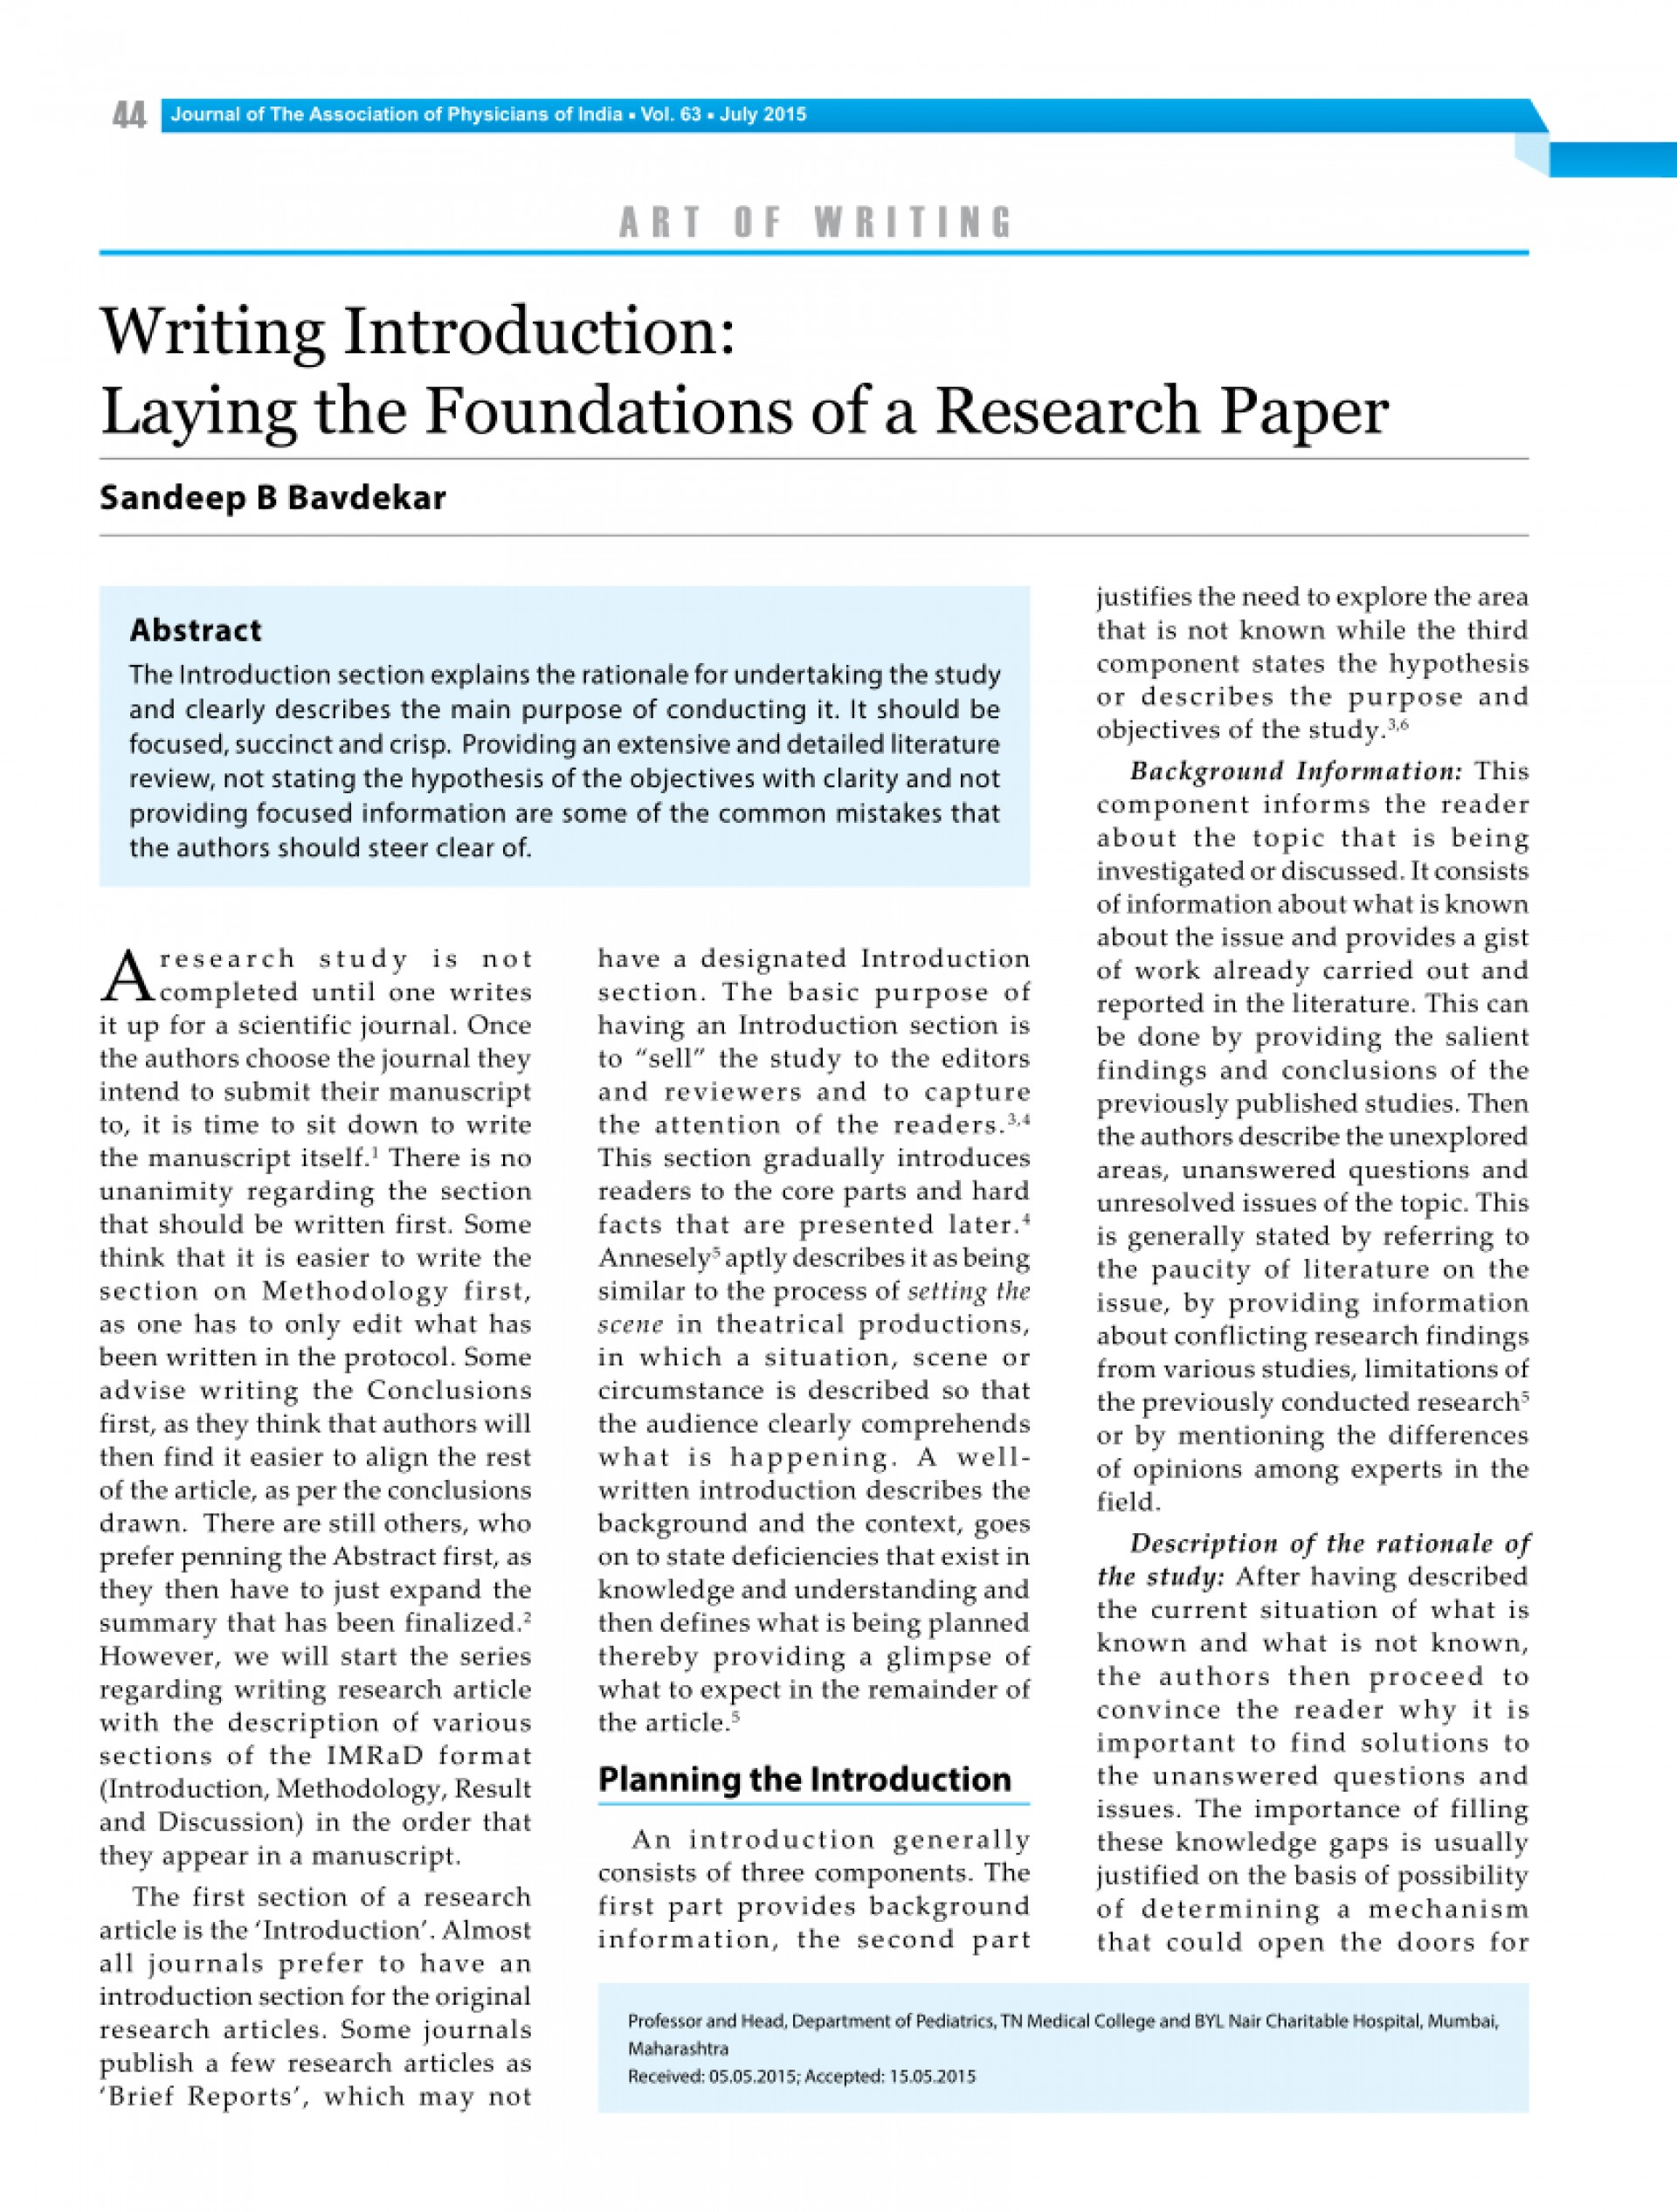 004 Largepreview Research Paper Writingn Introduction To Top Writing An A The Scientific Middle School Paragraph For 1920